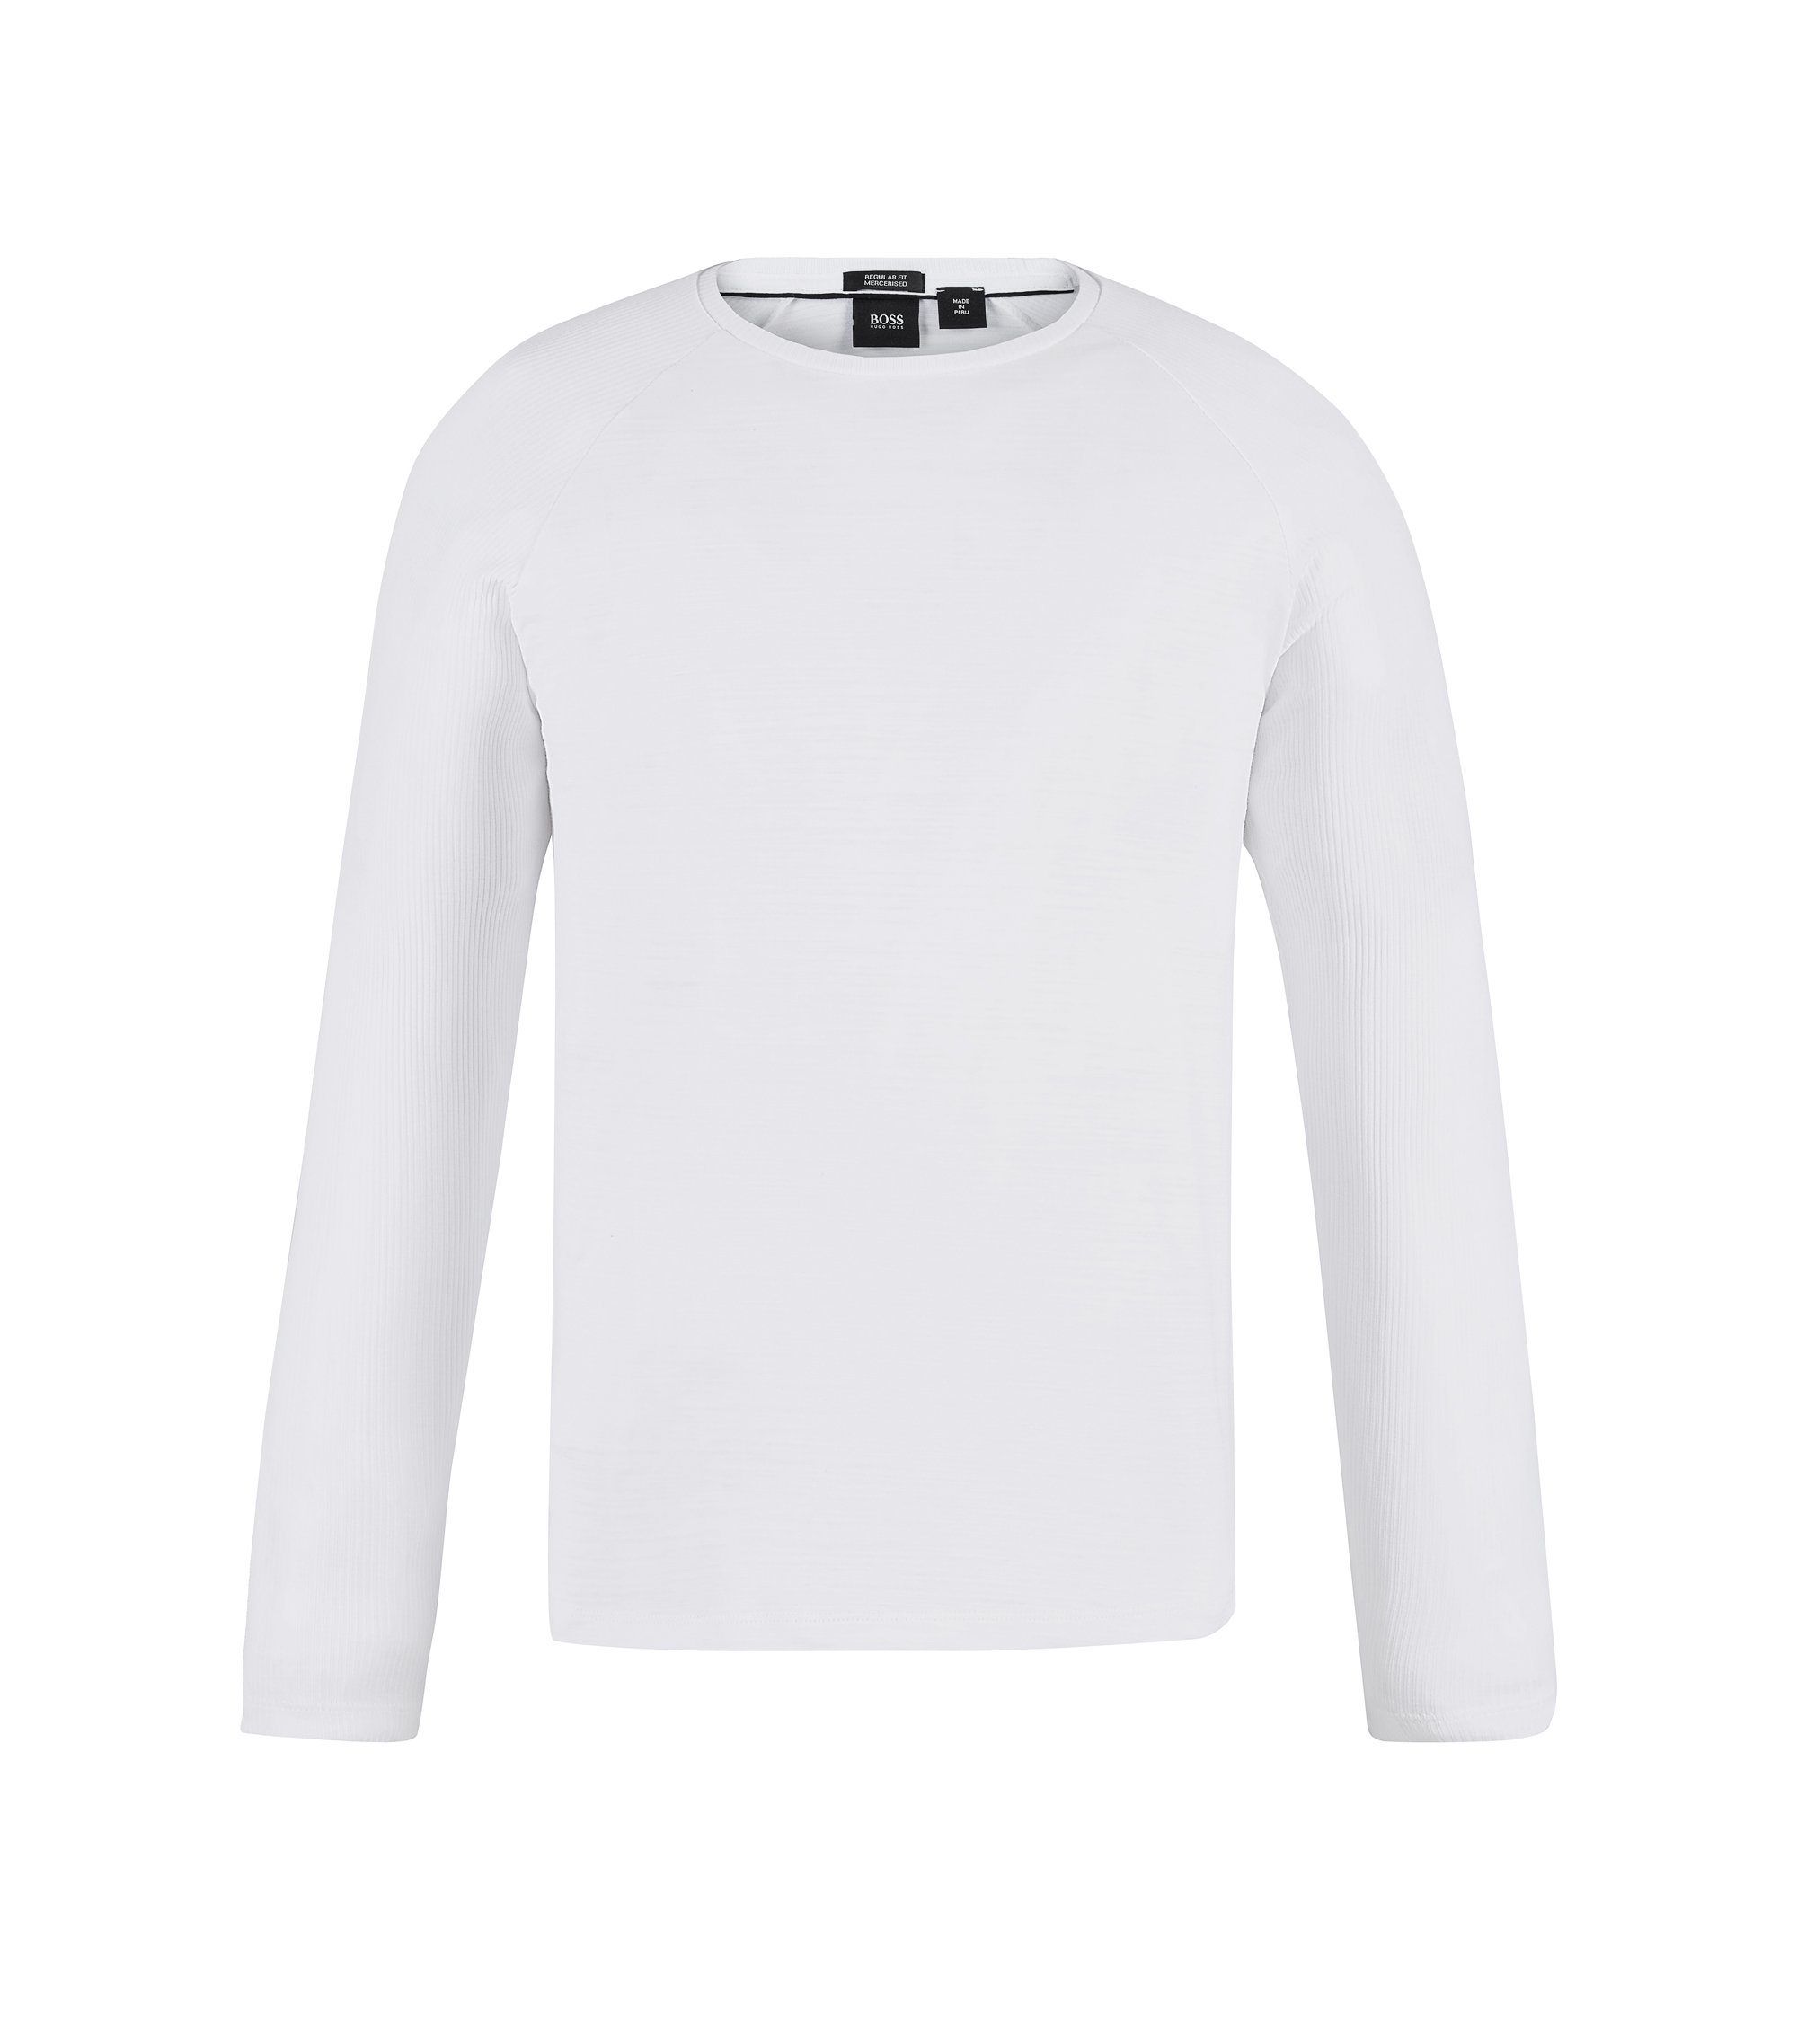 Cotton T-Shirt | Terell, White